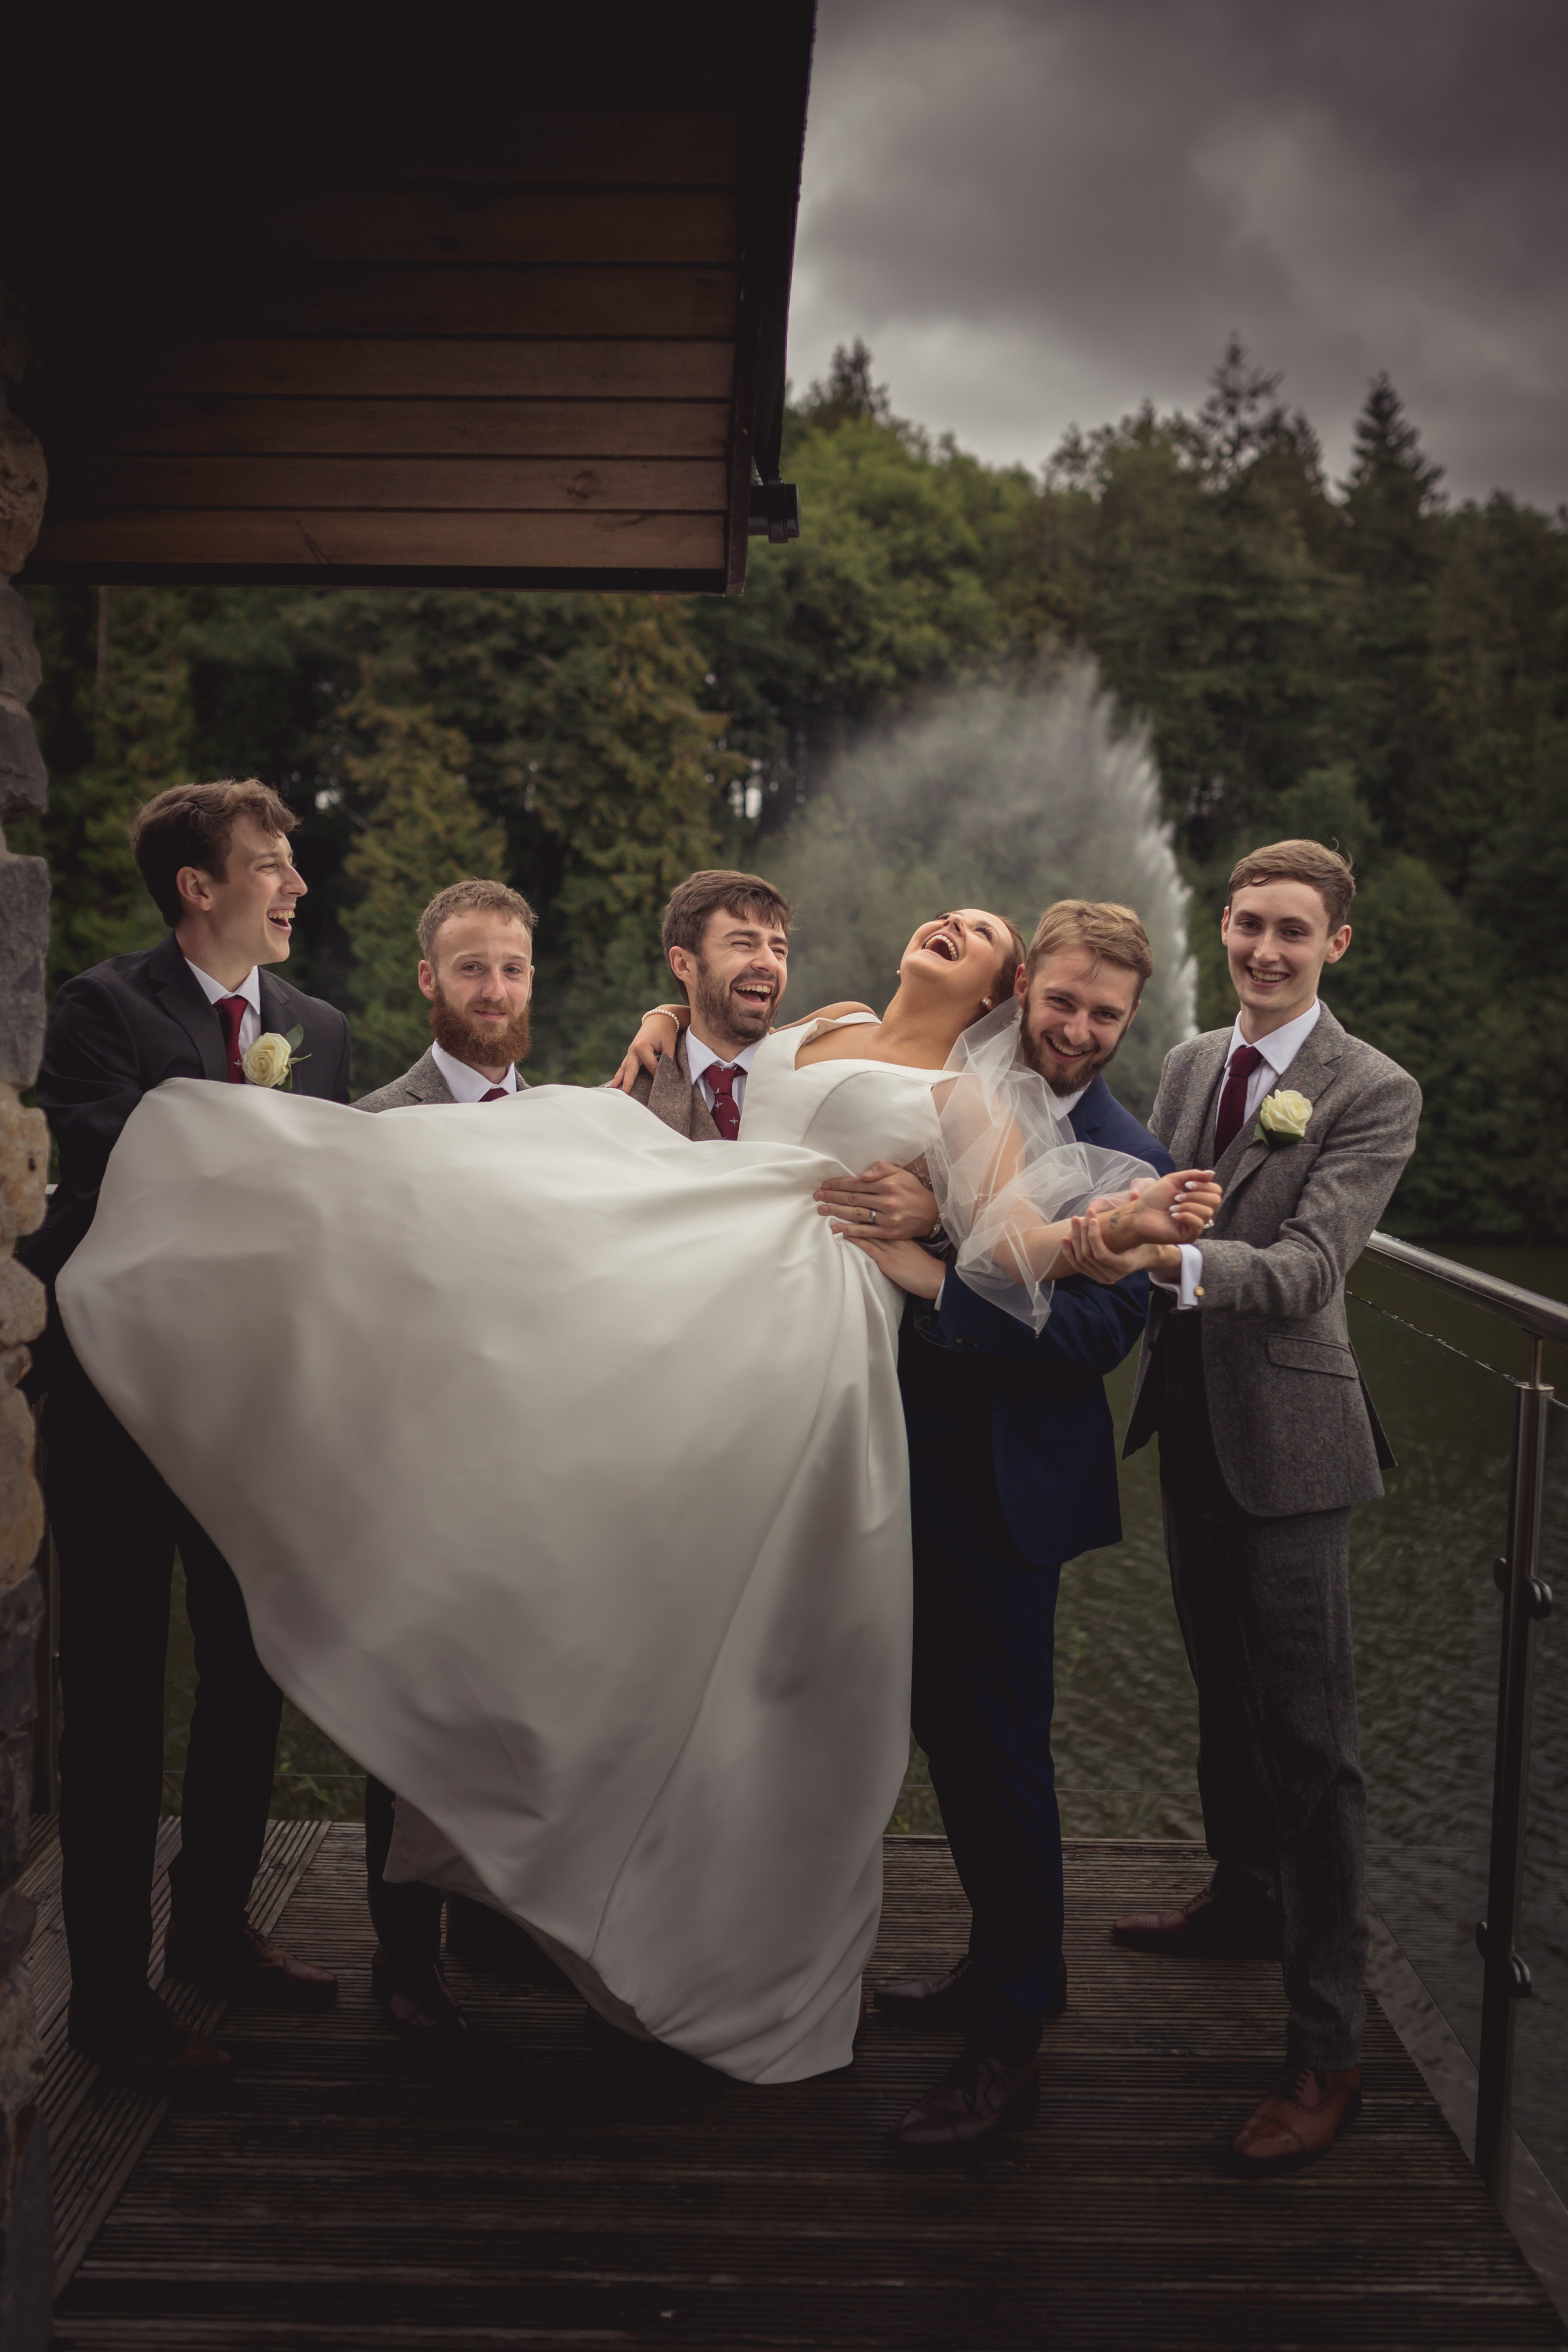 Groom and groomsmen holding aloft the bride, she is laughing out loud